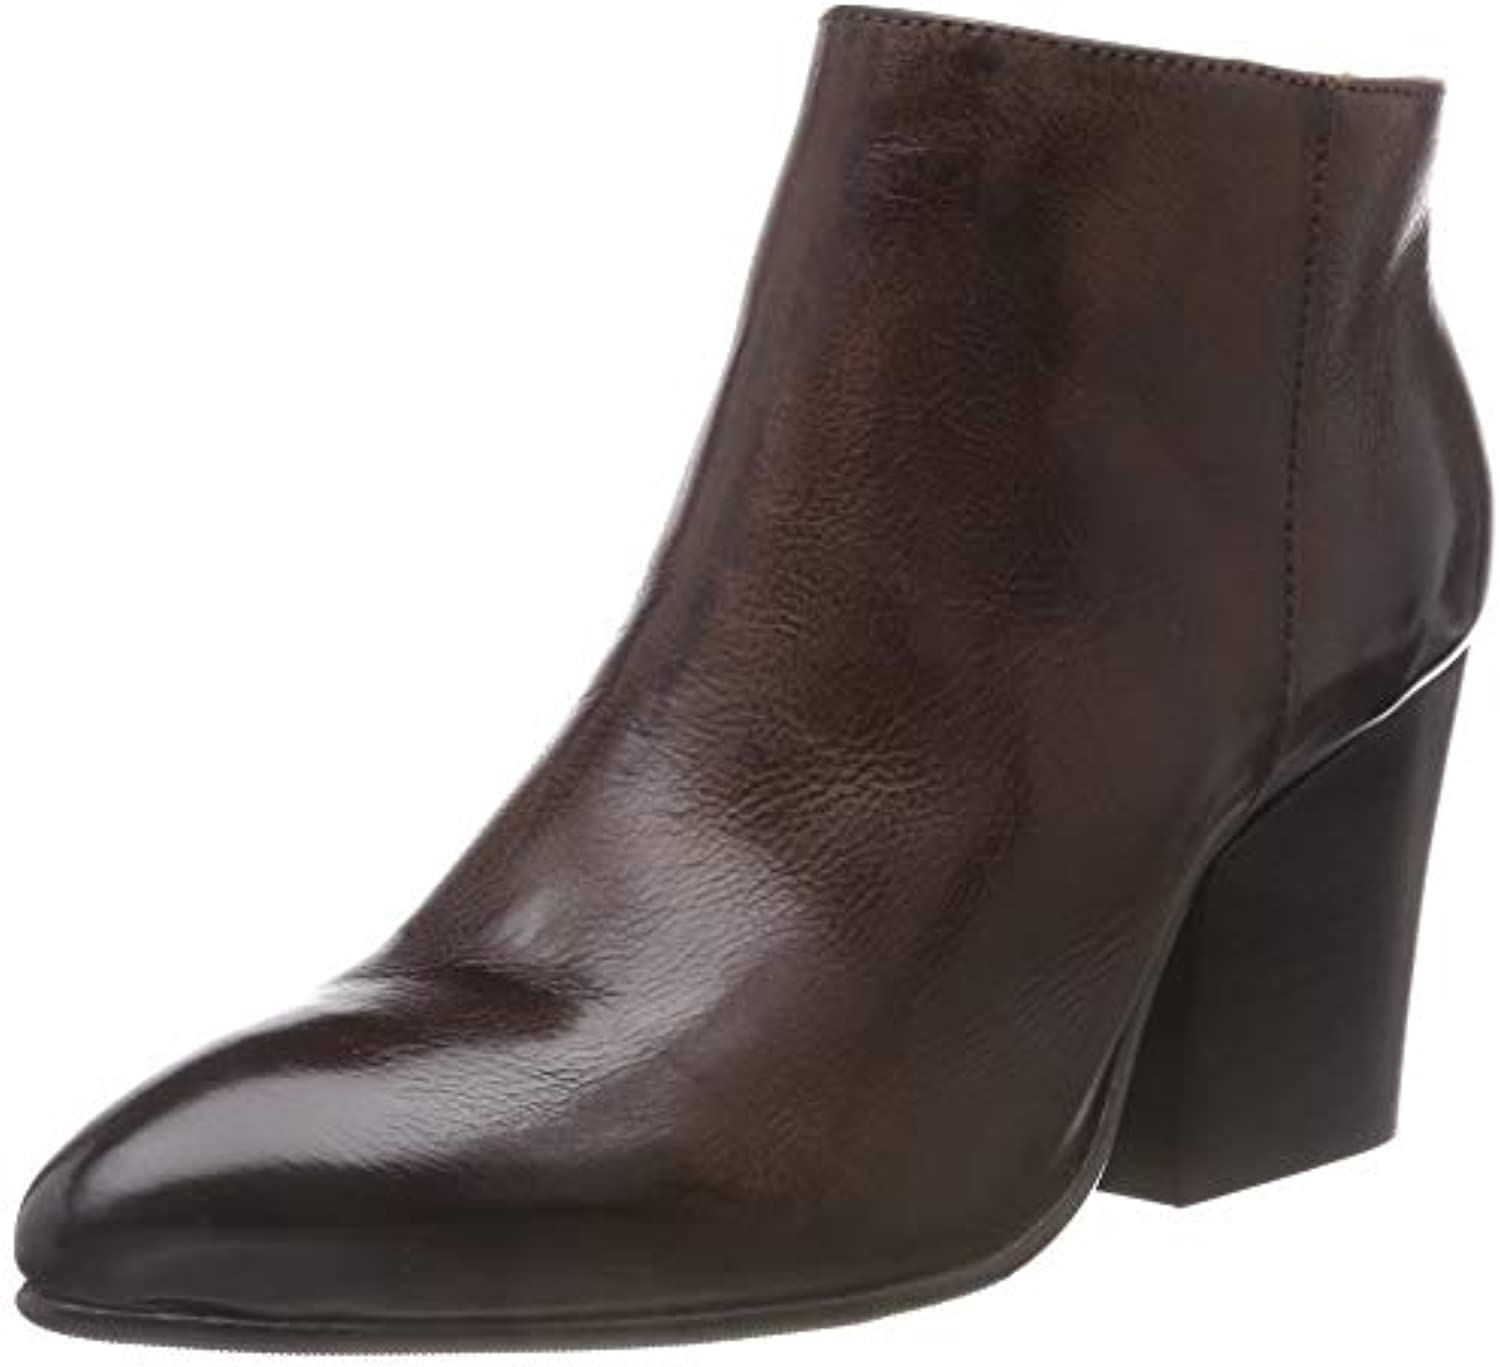 SELECTED FEMME Zip Slfamber Zip FEMME Leather Boot B, Bottines 29e1f2